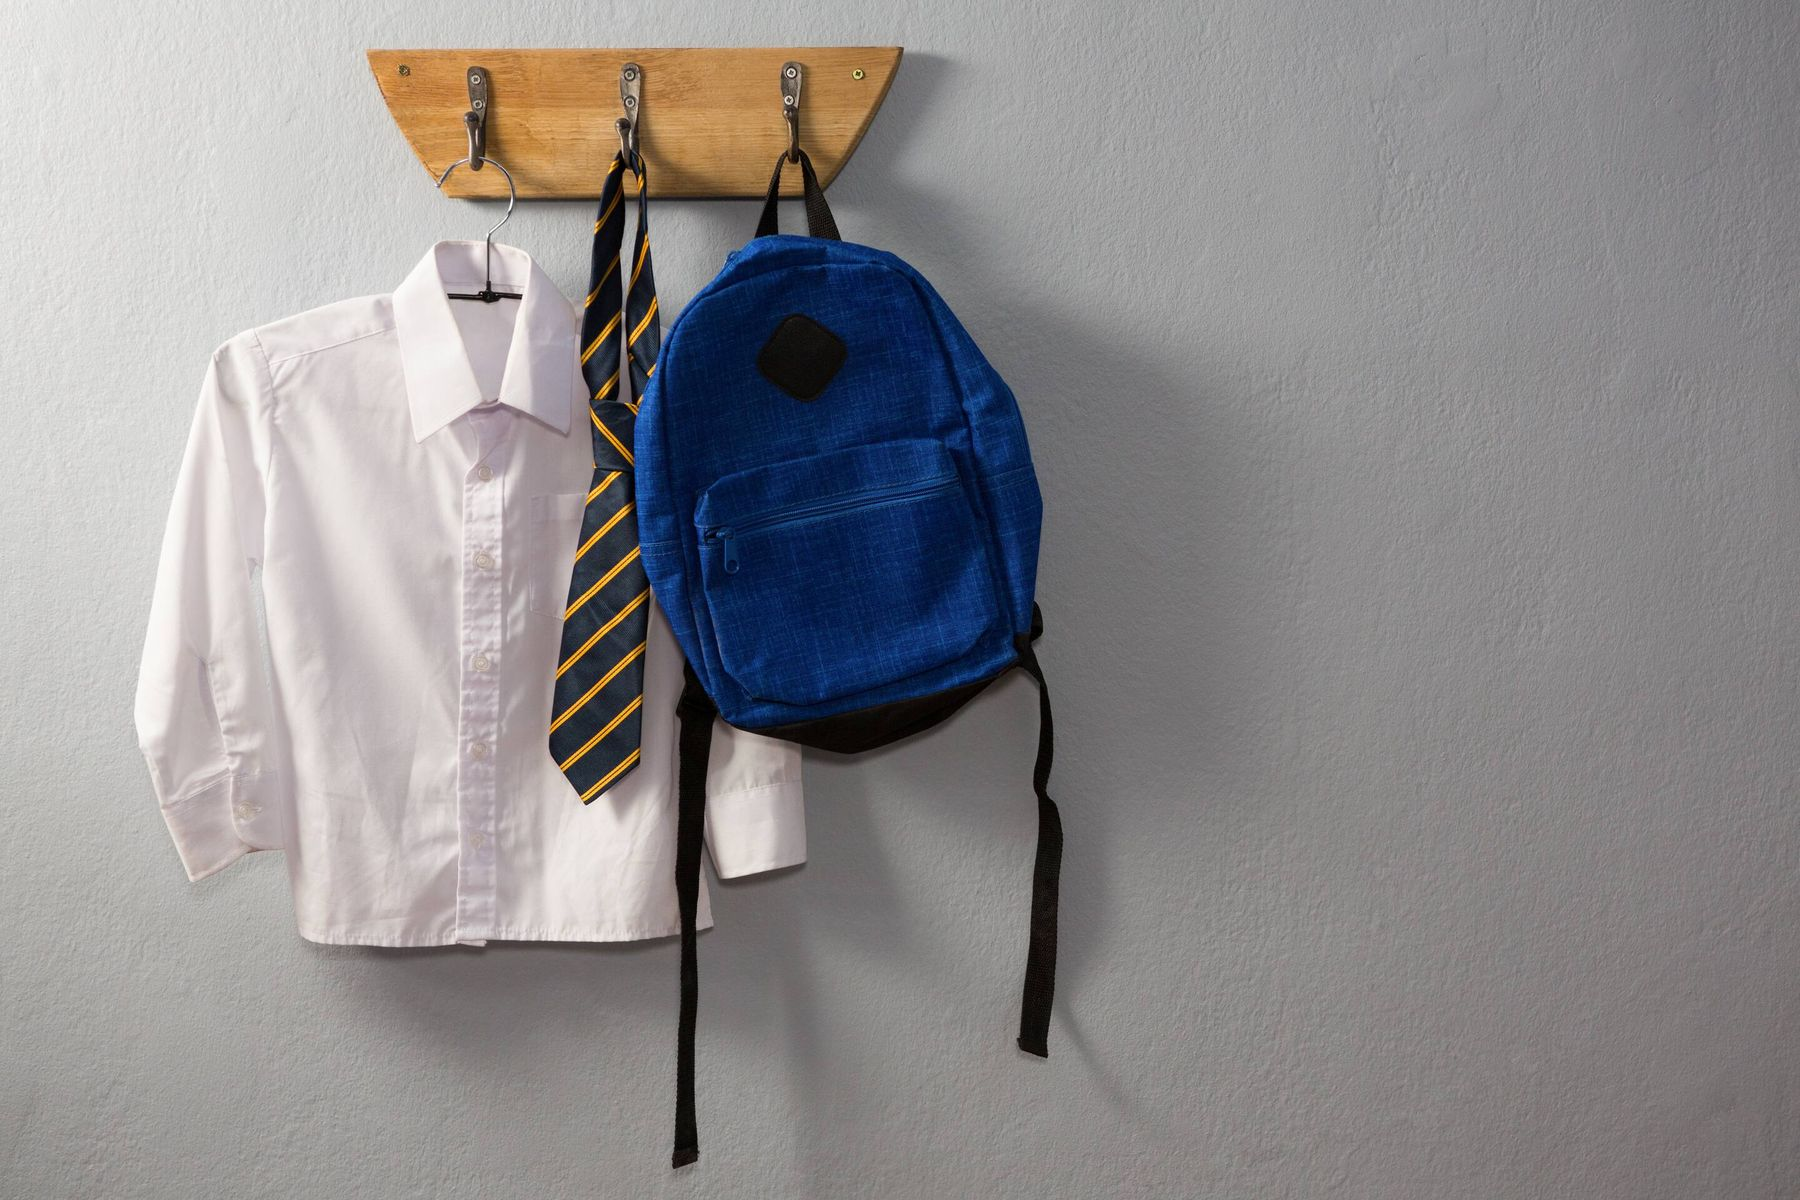 How to Disinfect Your Child's Schoolbag and Uniform Post Lockdown